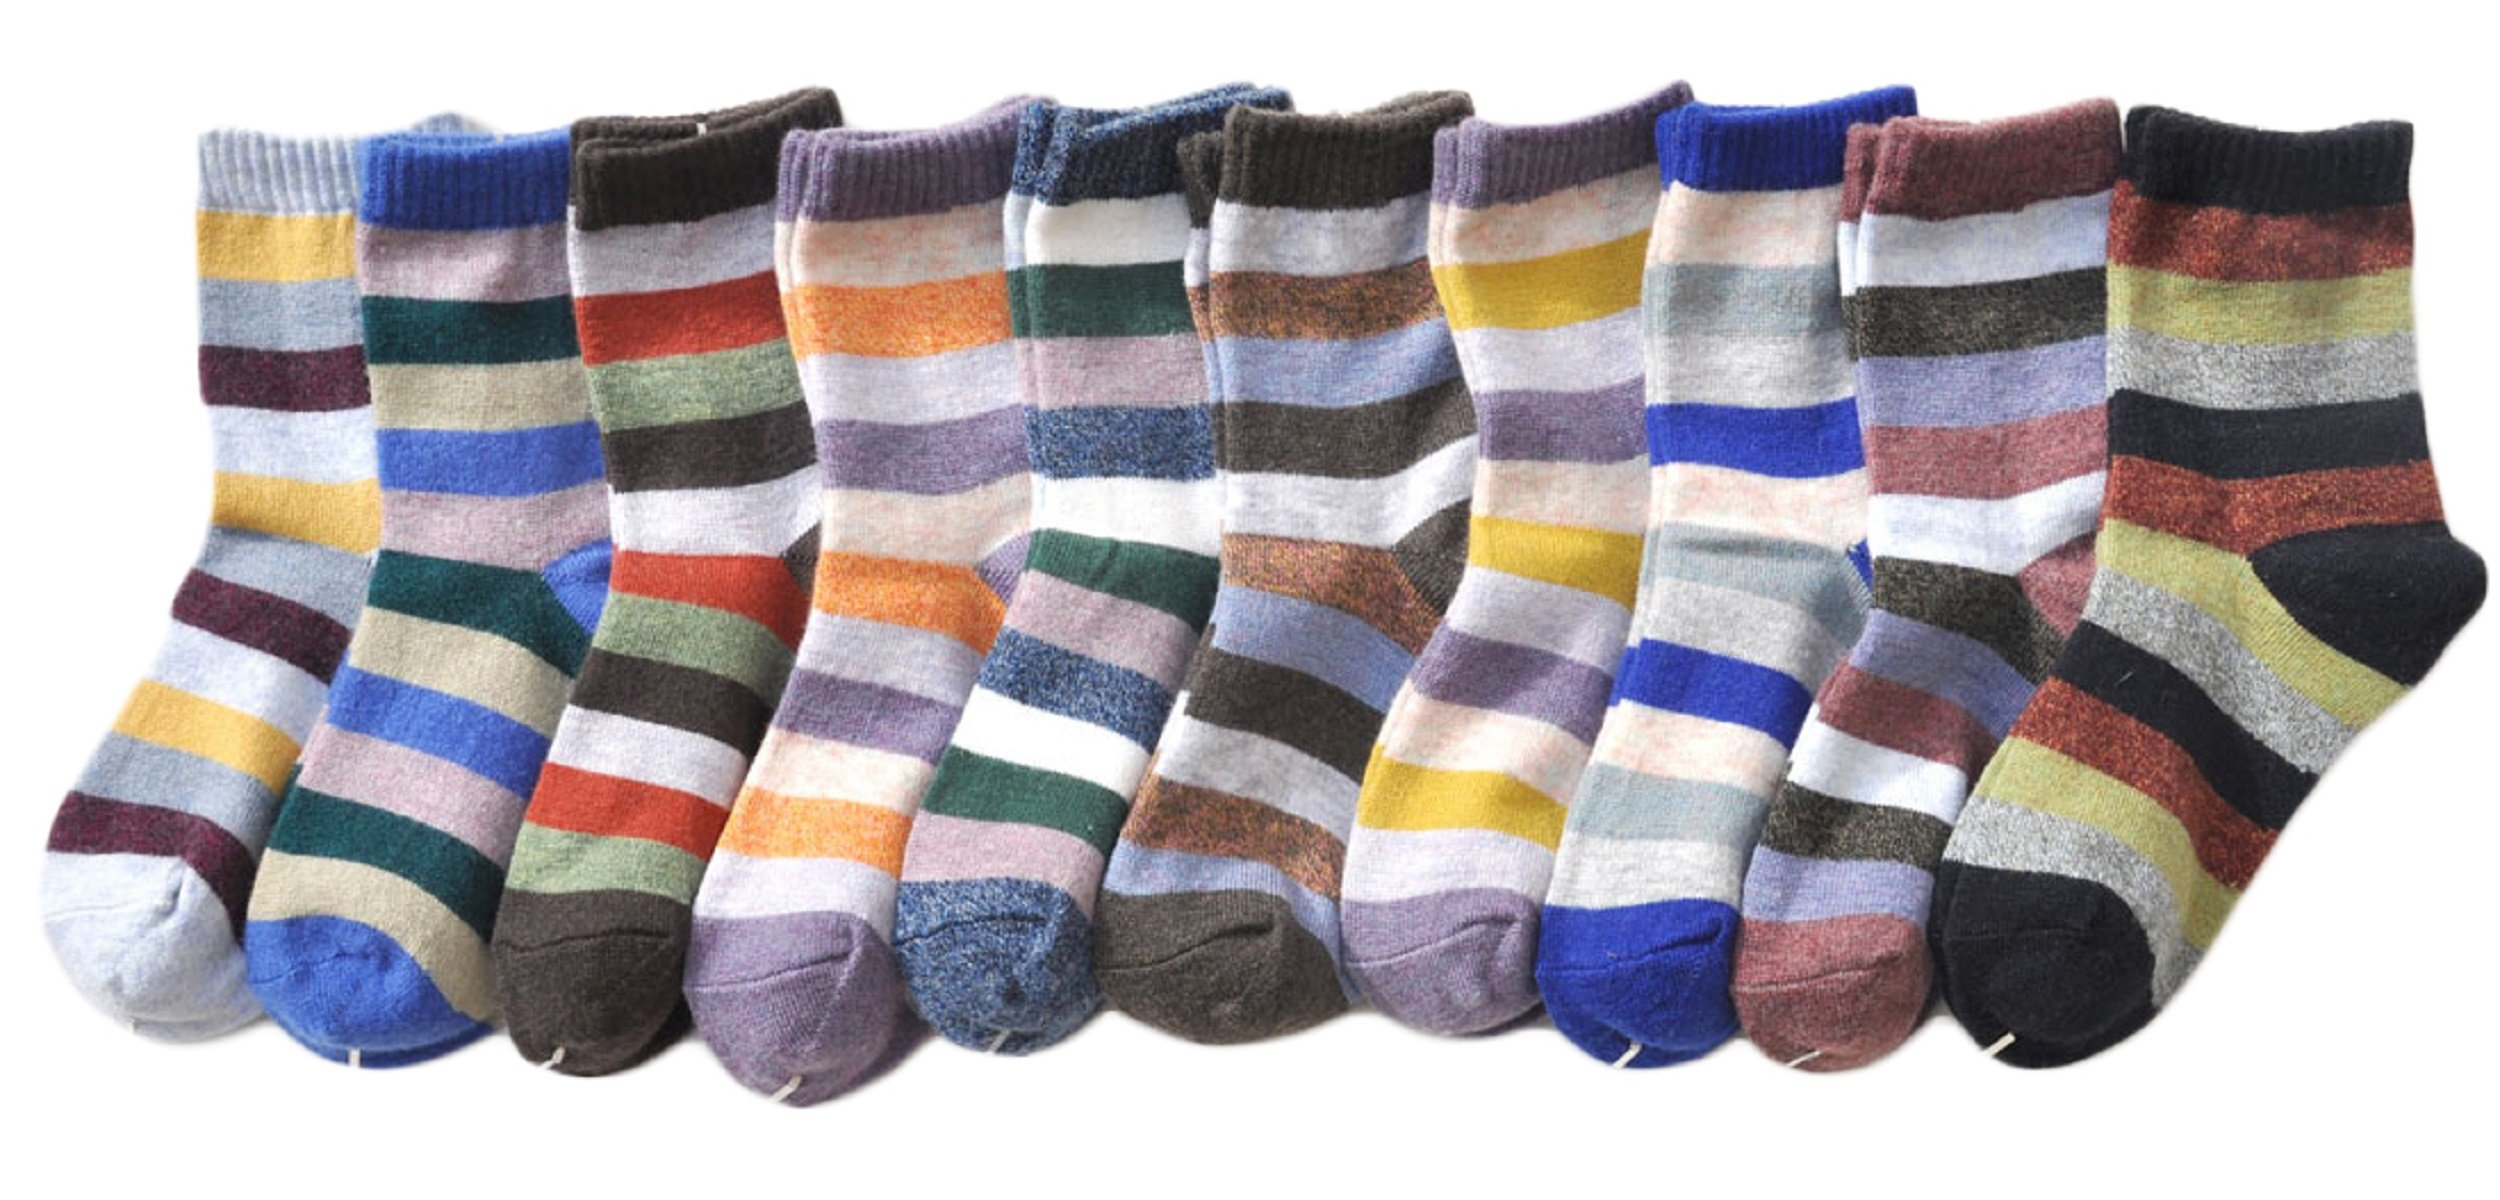 Lian LifeStyle Boy's 10 Pairs Pack Cashmere Wool Crew Socks Stripped Size 15-19CM by Lian LifeStyle